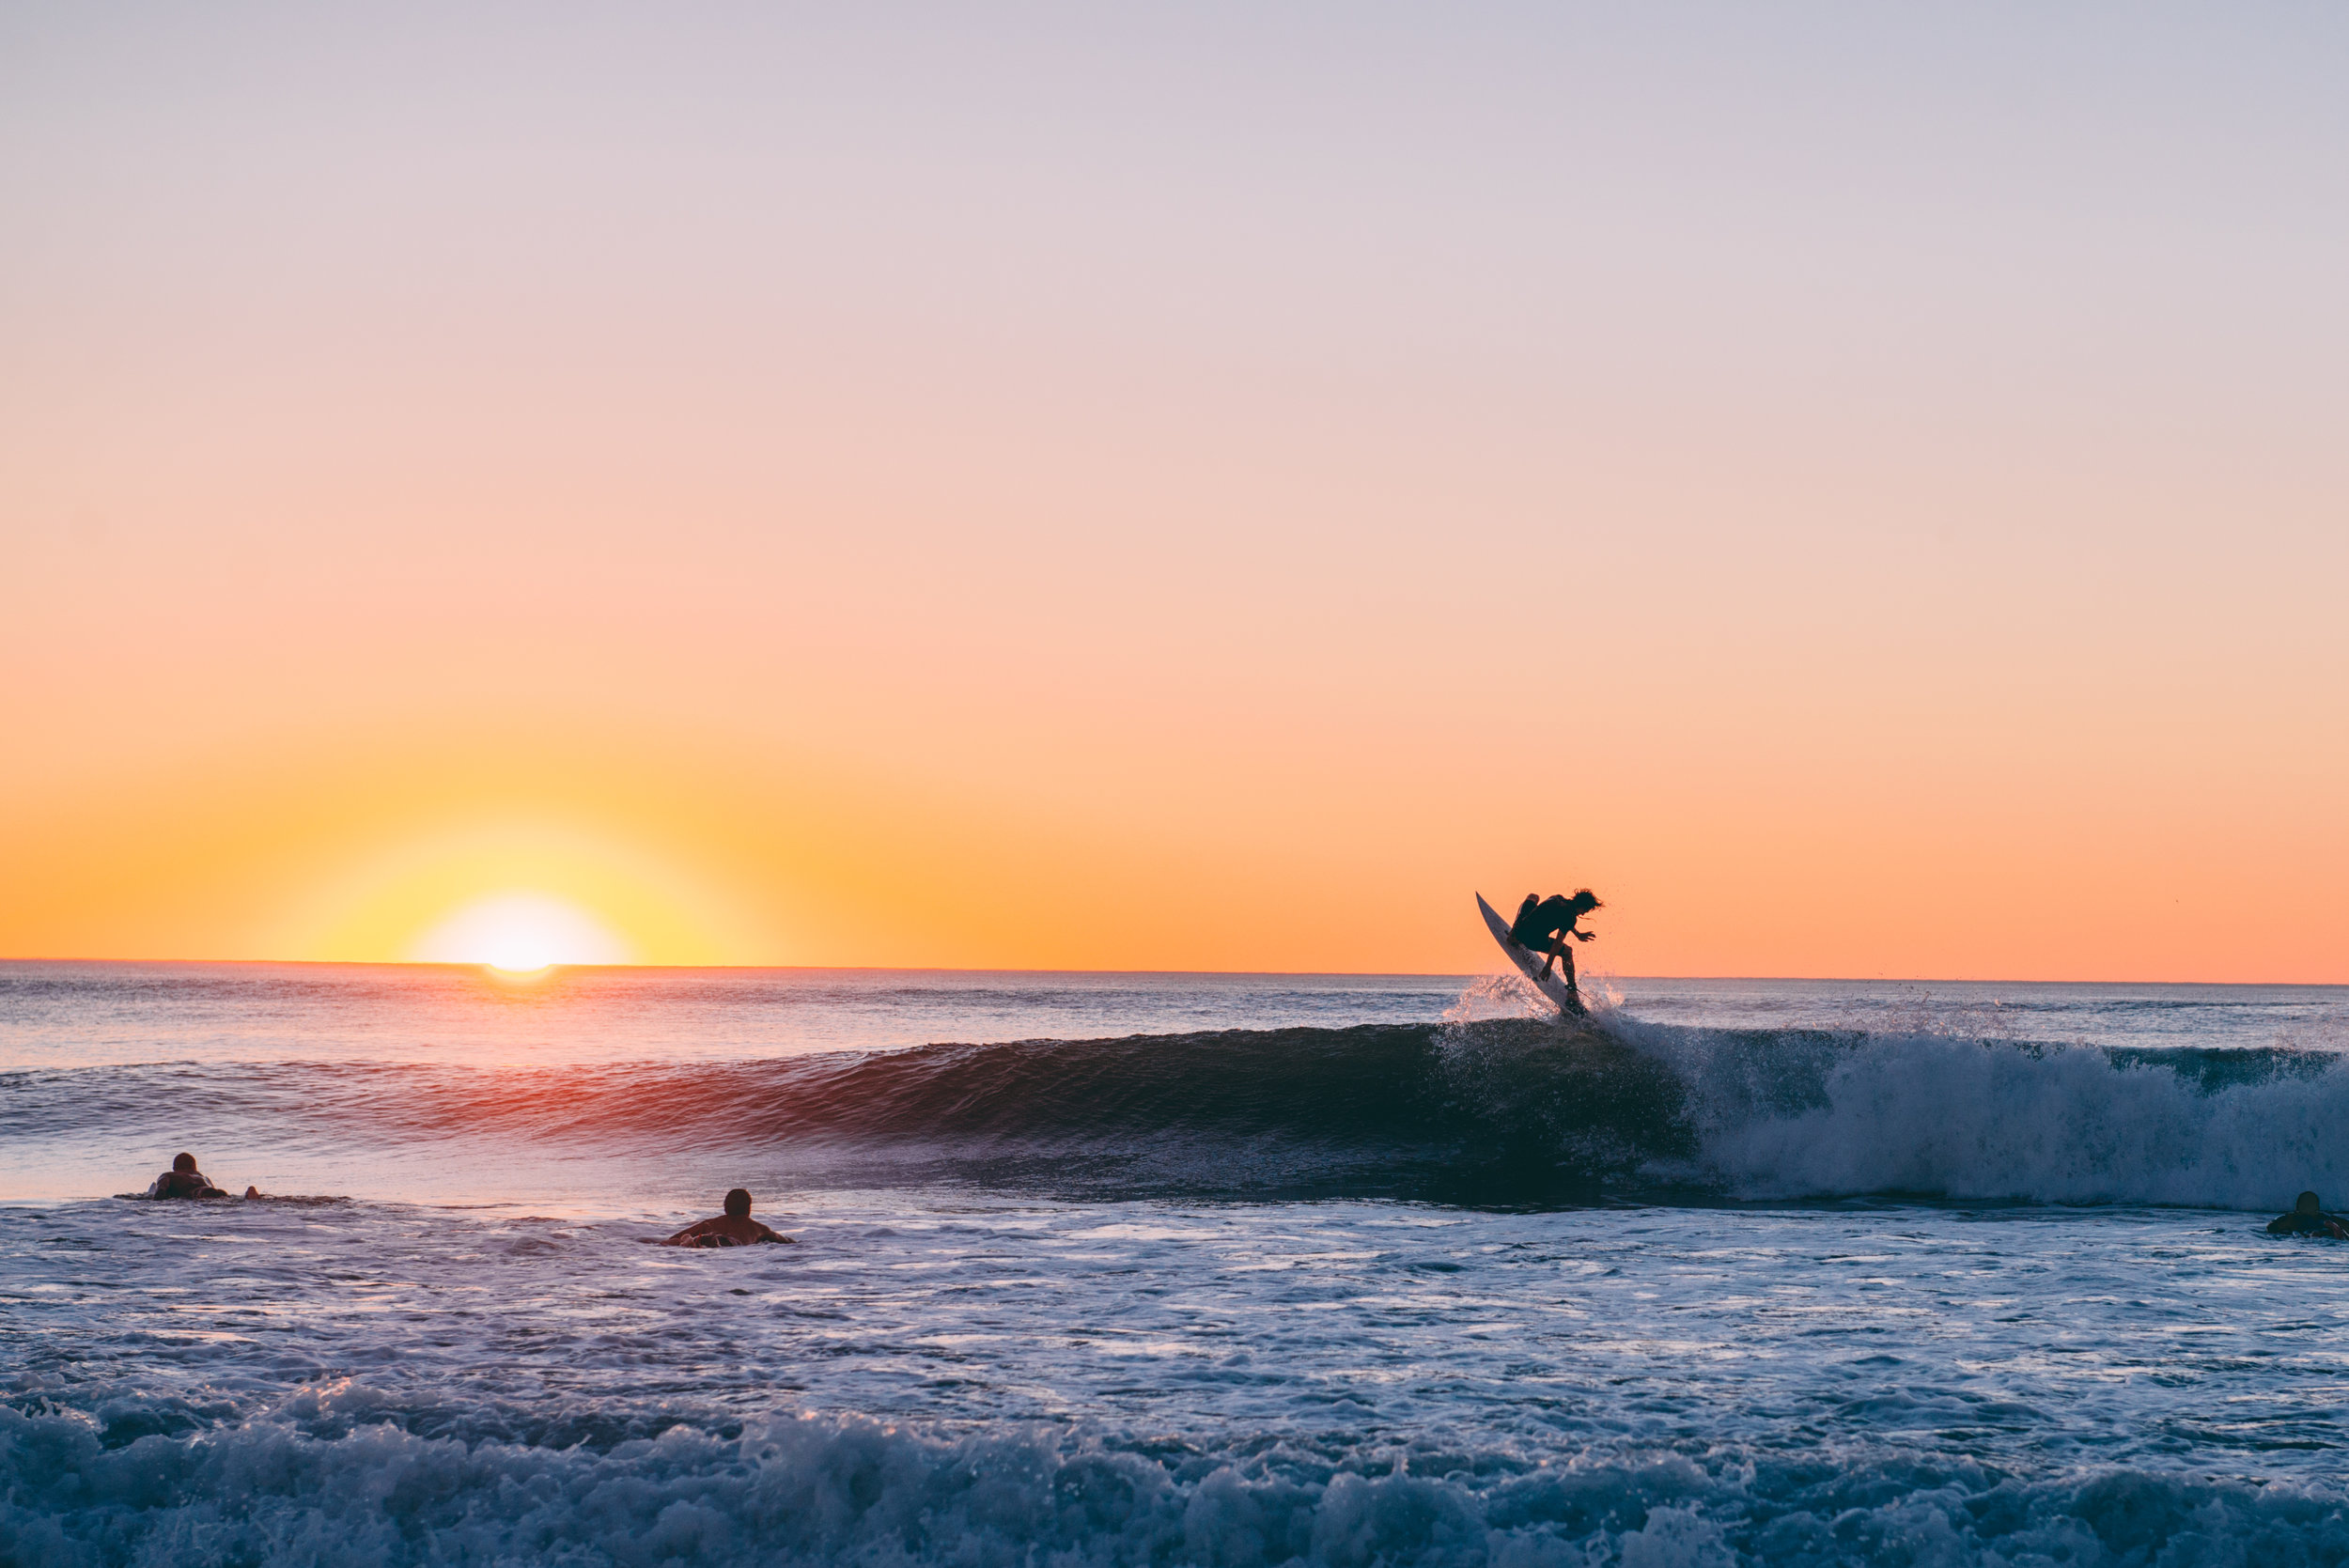 Tommy boosting a sunset alley up during an evening session at Le Penon